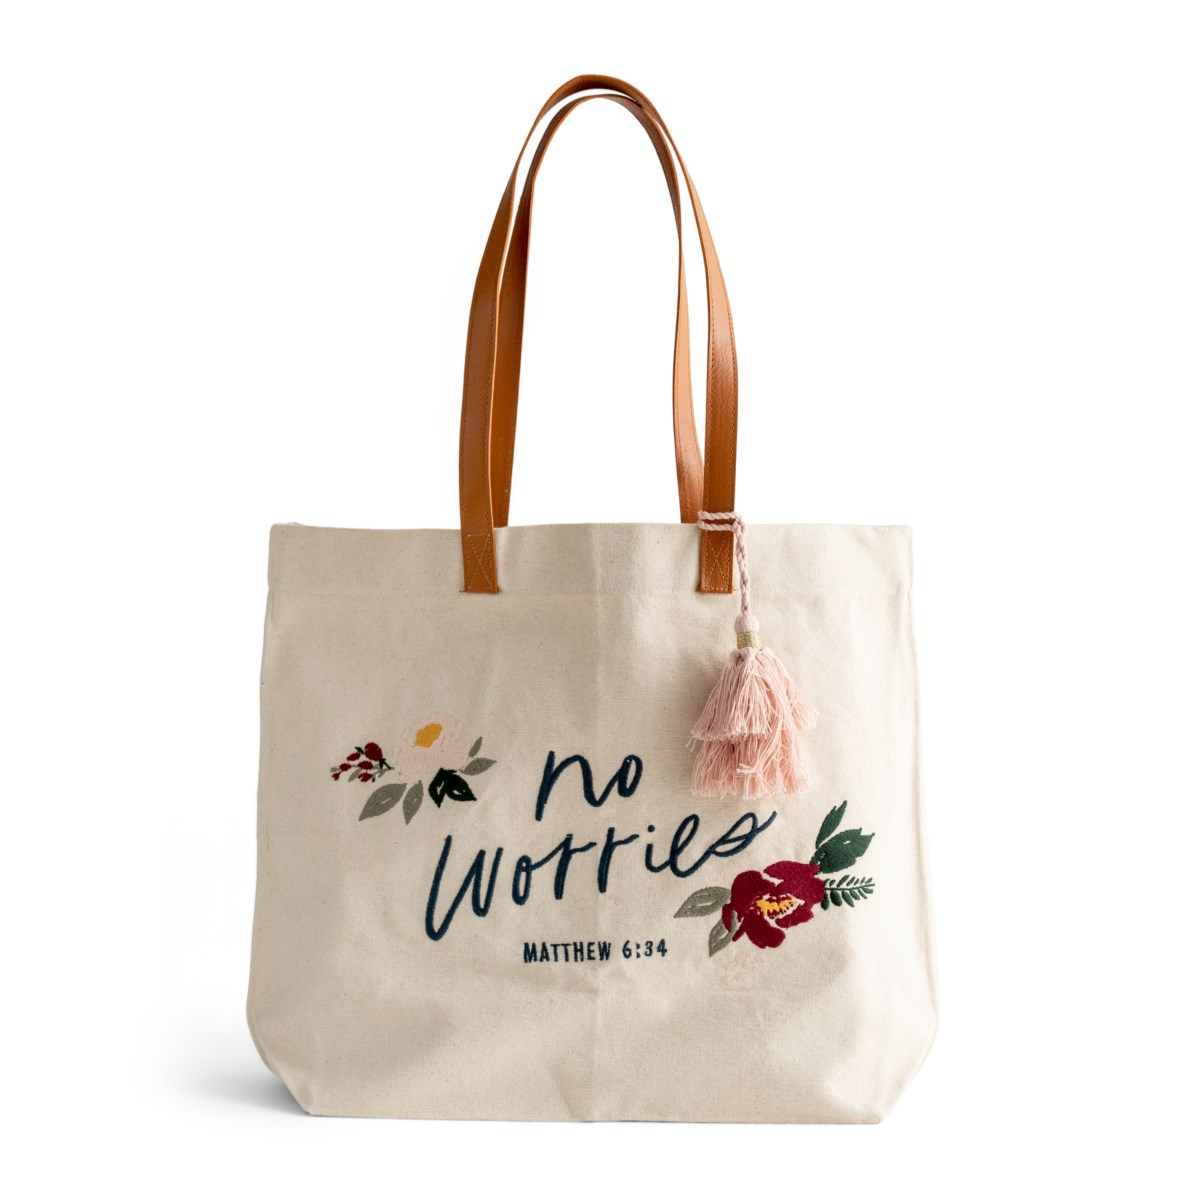 Drinkware, Totes & Accessories